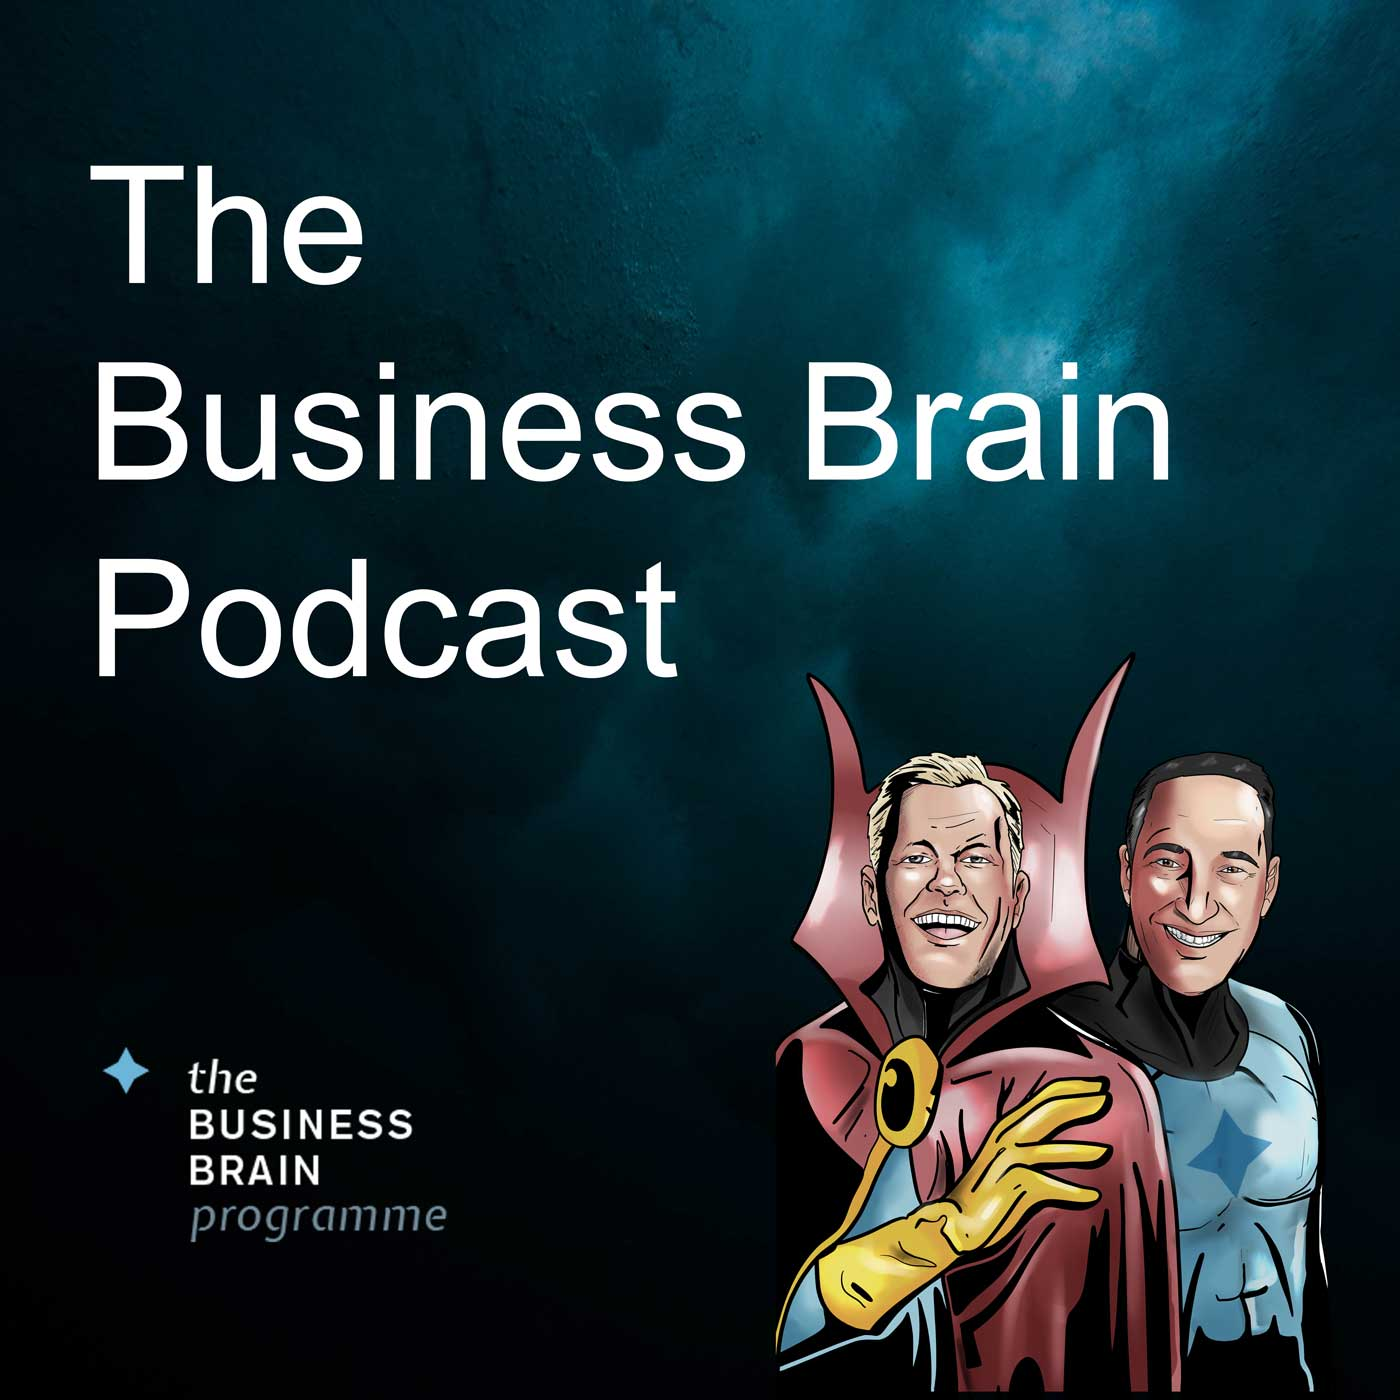 The Business Brain Podcast